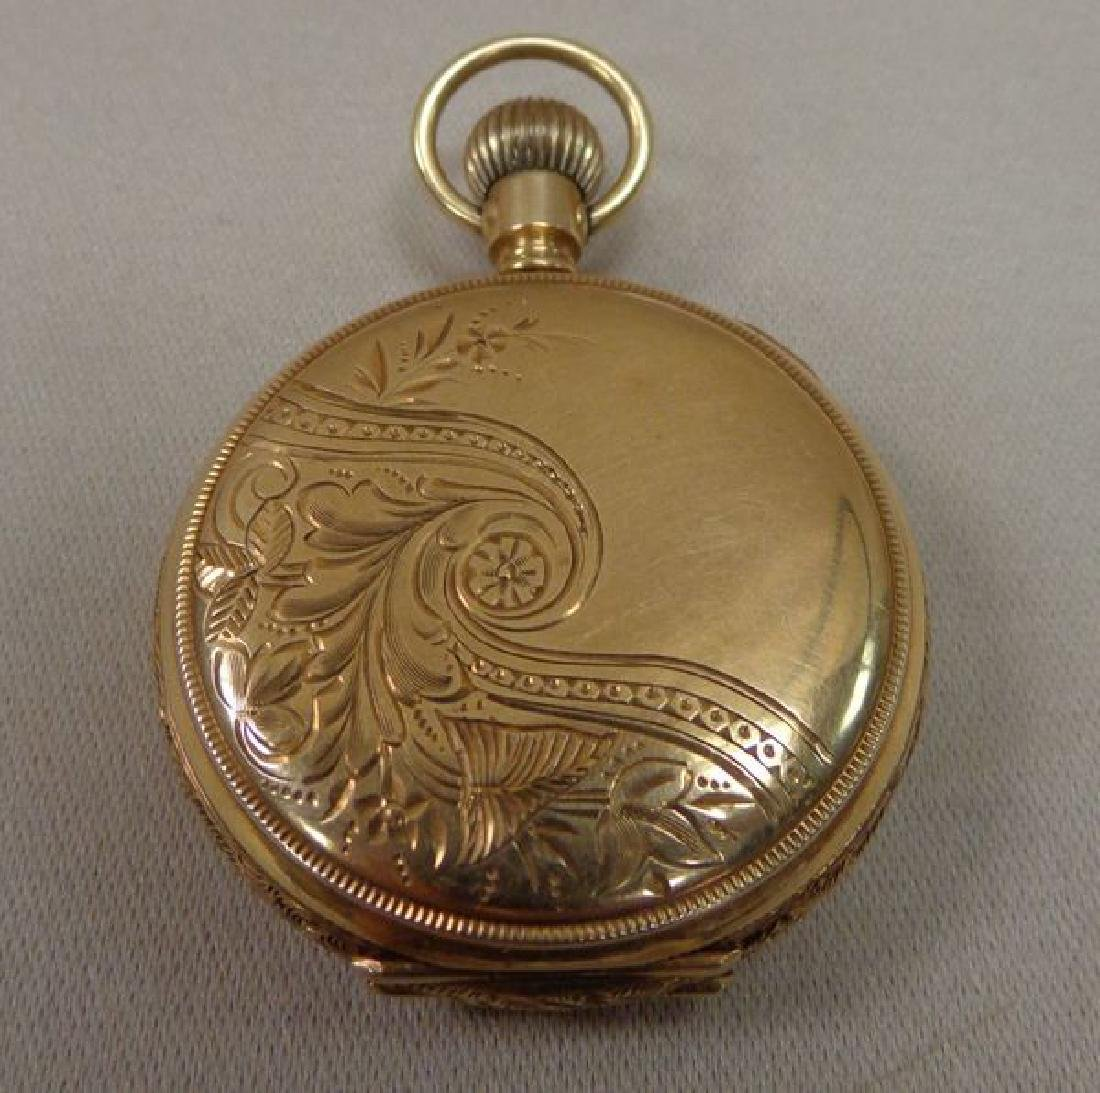 14 KT. GOLD ELGIN POCKET WATCH